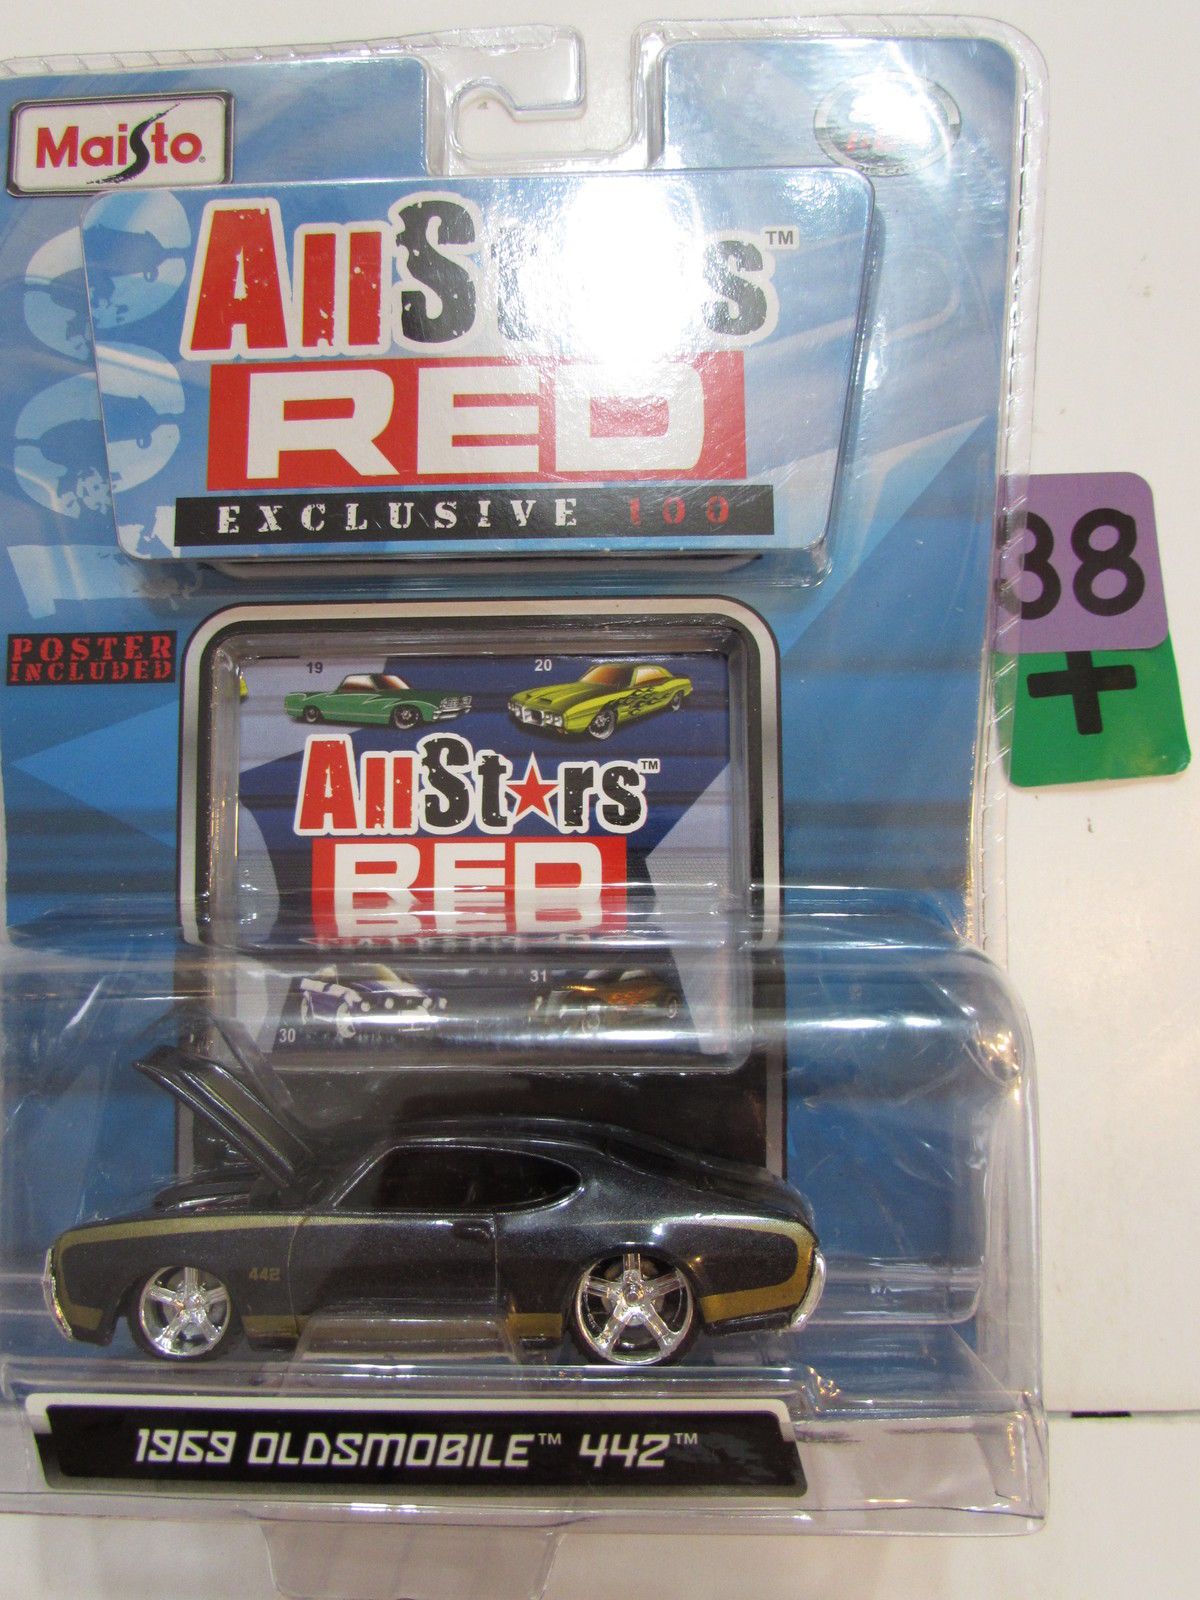 MAISTO ALL STARS RED EXCLUSIVE 100 - 1969 OLDSMOBILE 442